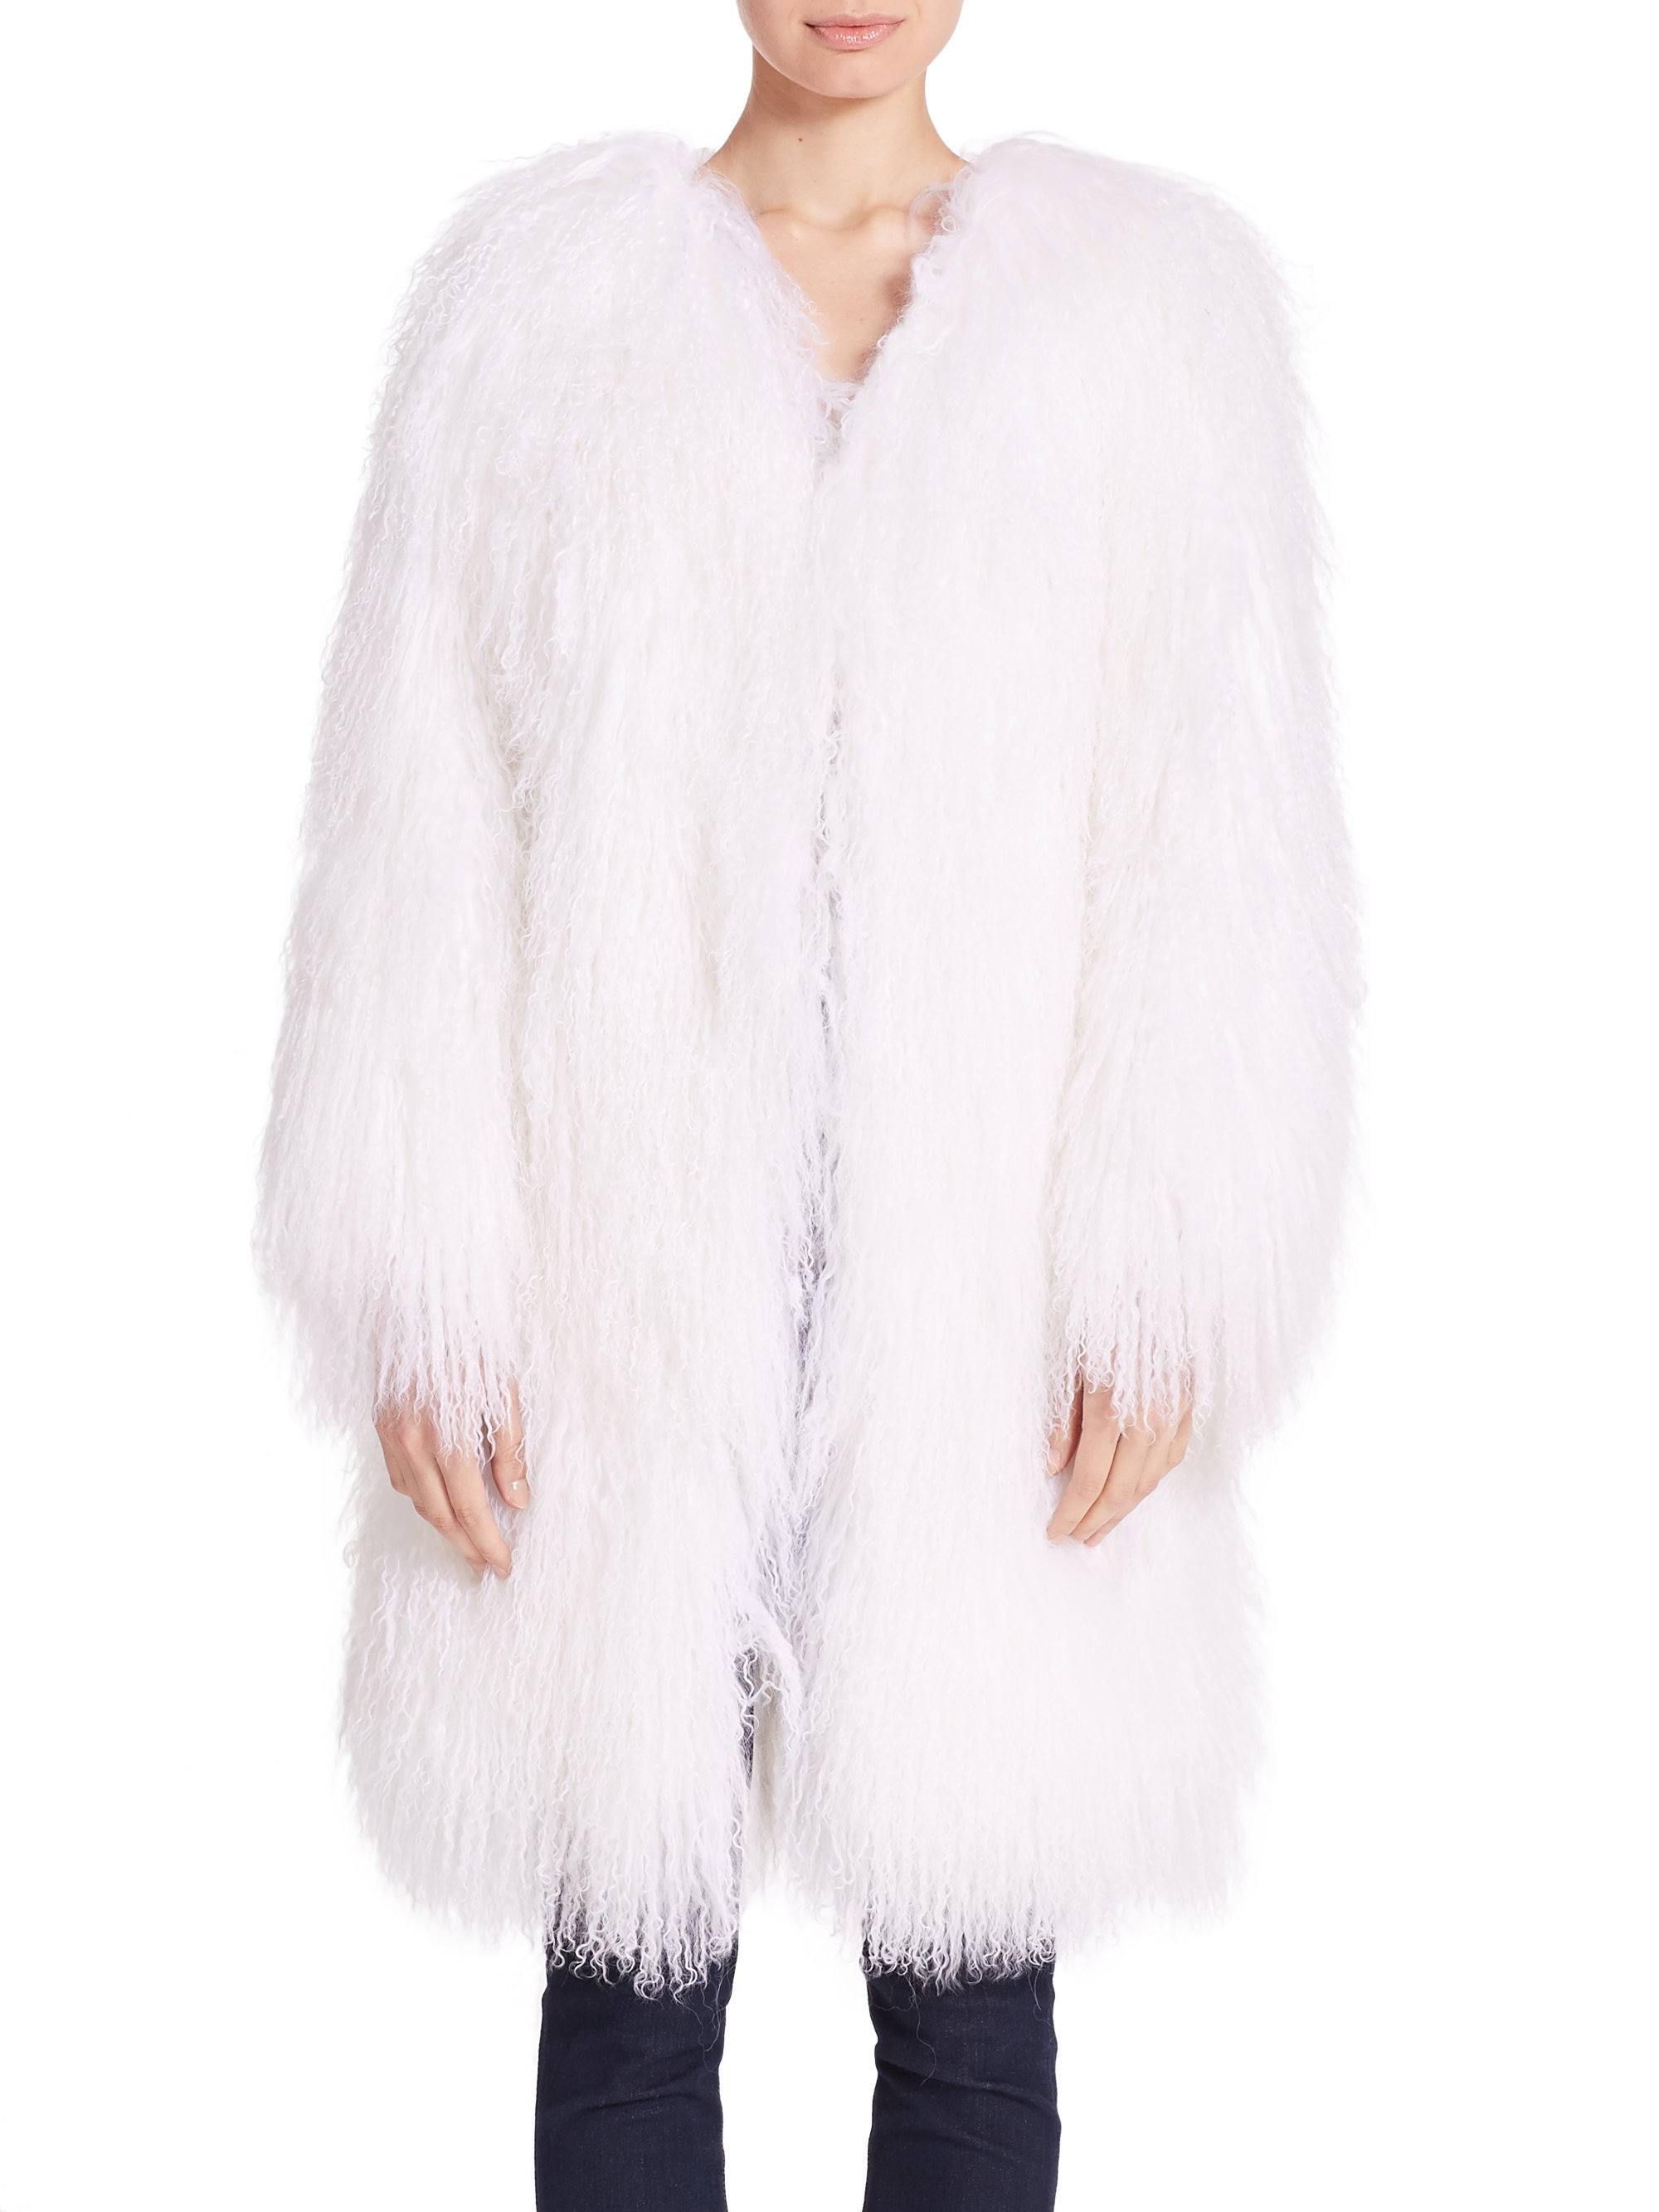 Adrienne landau Mongolian Lamb Fur Coat in White | Lyst